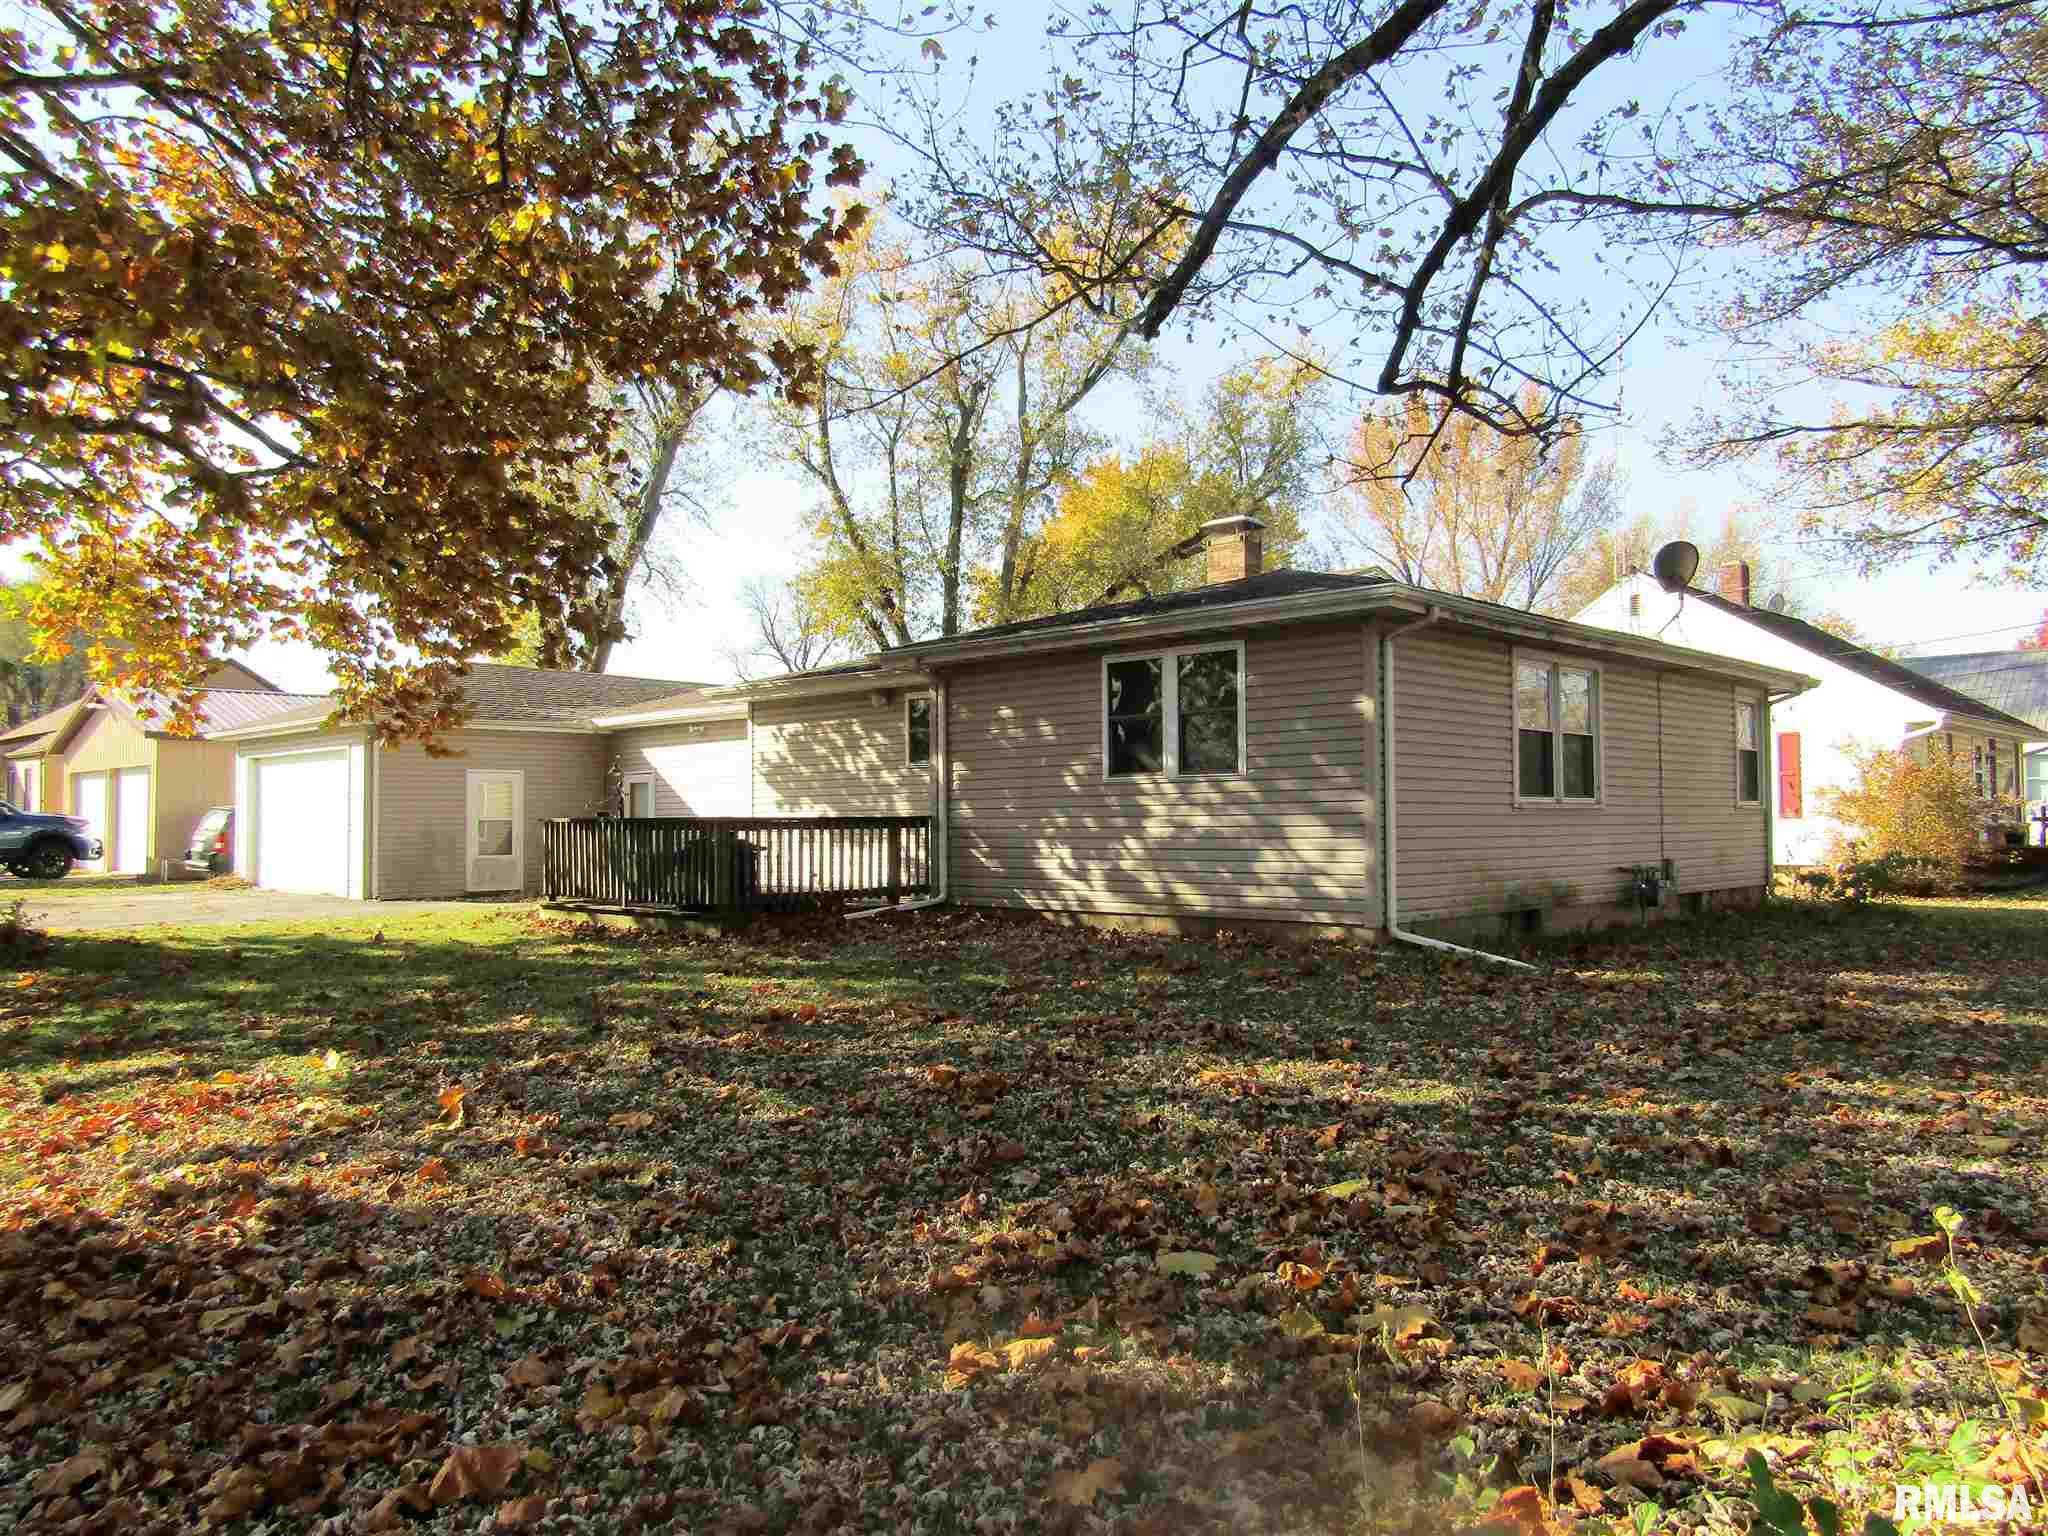 102 VAN BUREN Property Photo - Lewistown, IL real estate listing